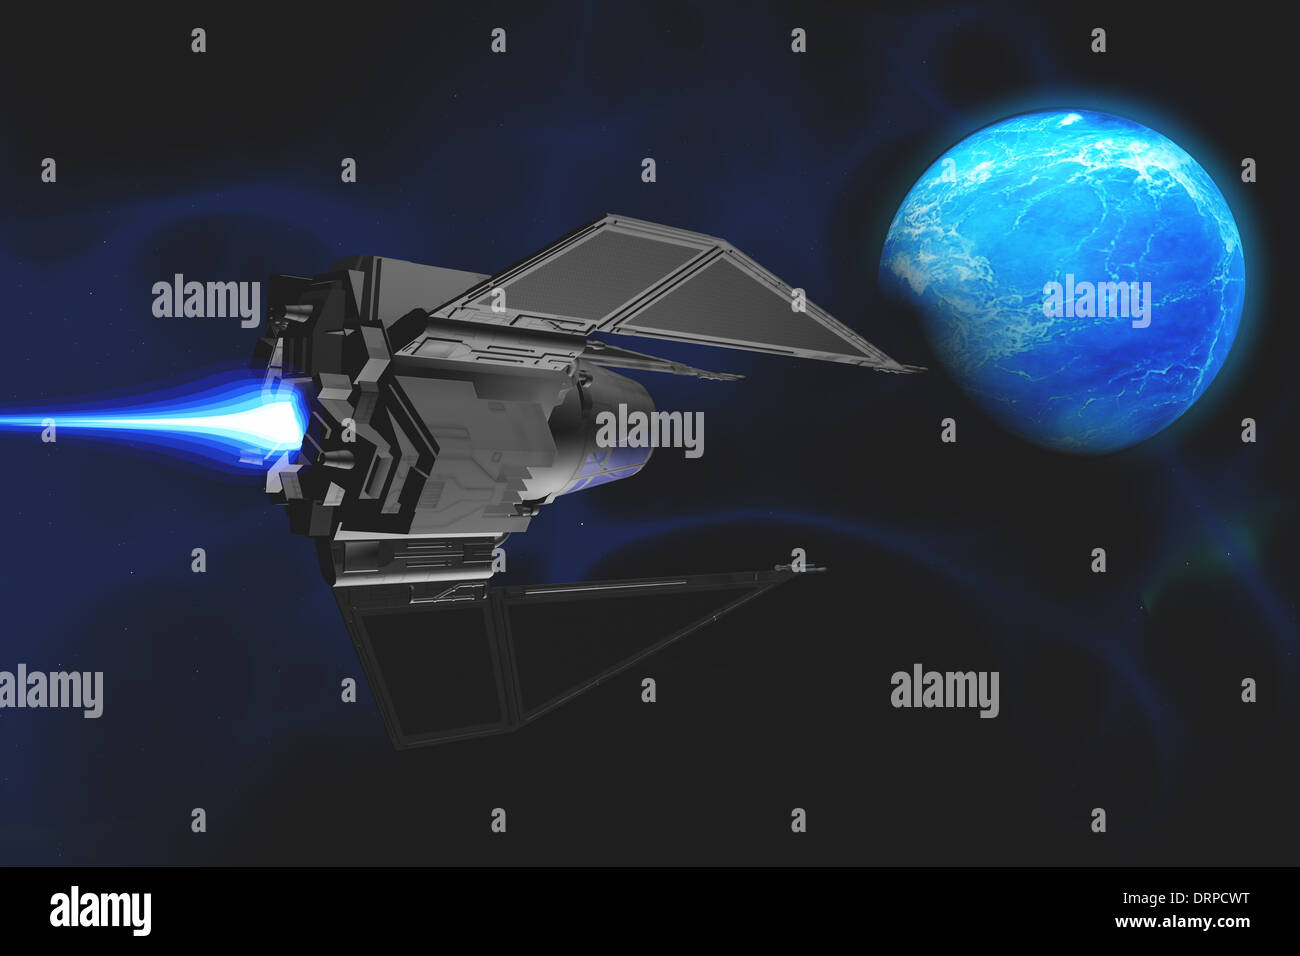 A small spacecraft from Earth reaches a water planet after many lightyears. - Stock Image